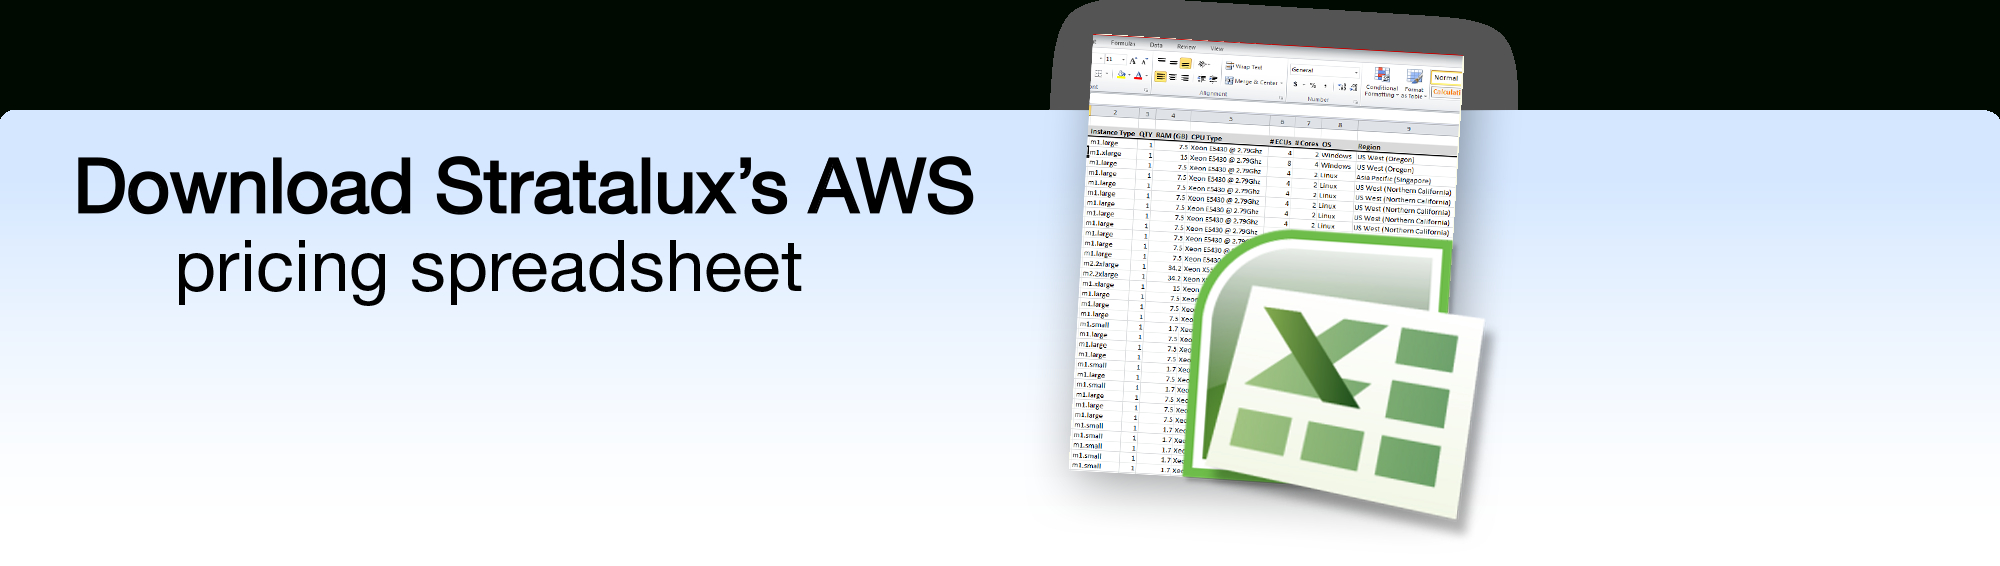 Aws Pricing Spreadsheet With Regard To Stratalux Releases Free Aws Pricing Tool  Stratalux, Inc.